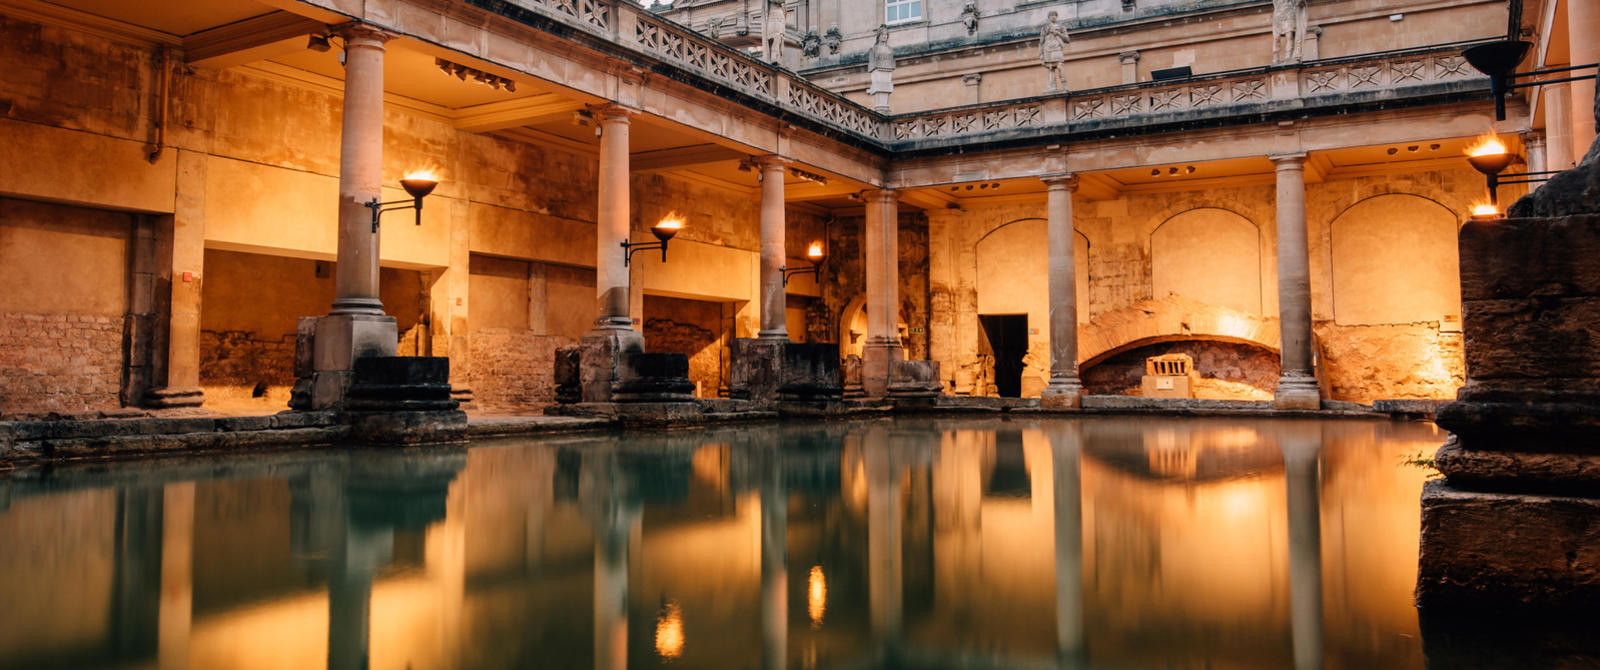 Image: Roman Baths, Amy Sanders